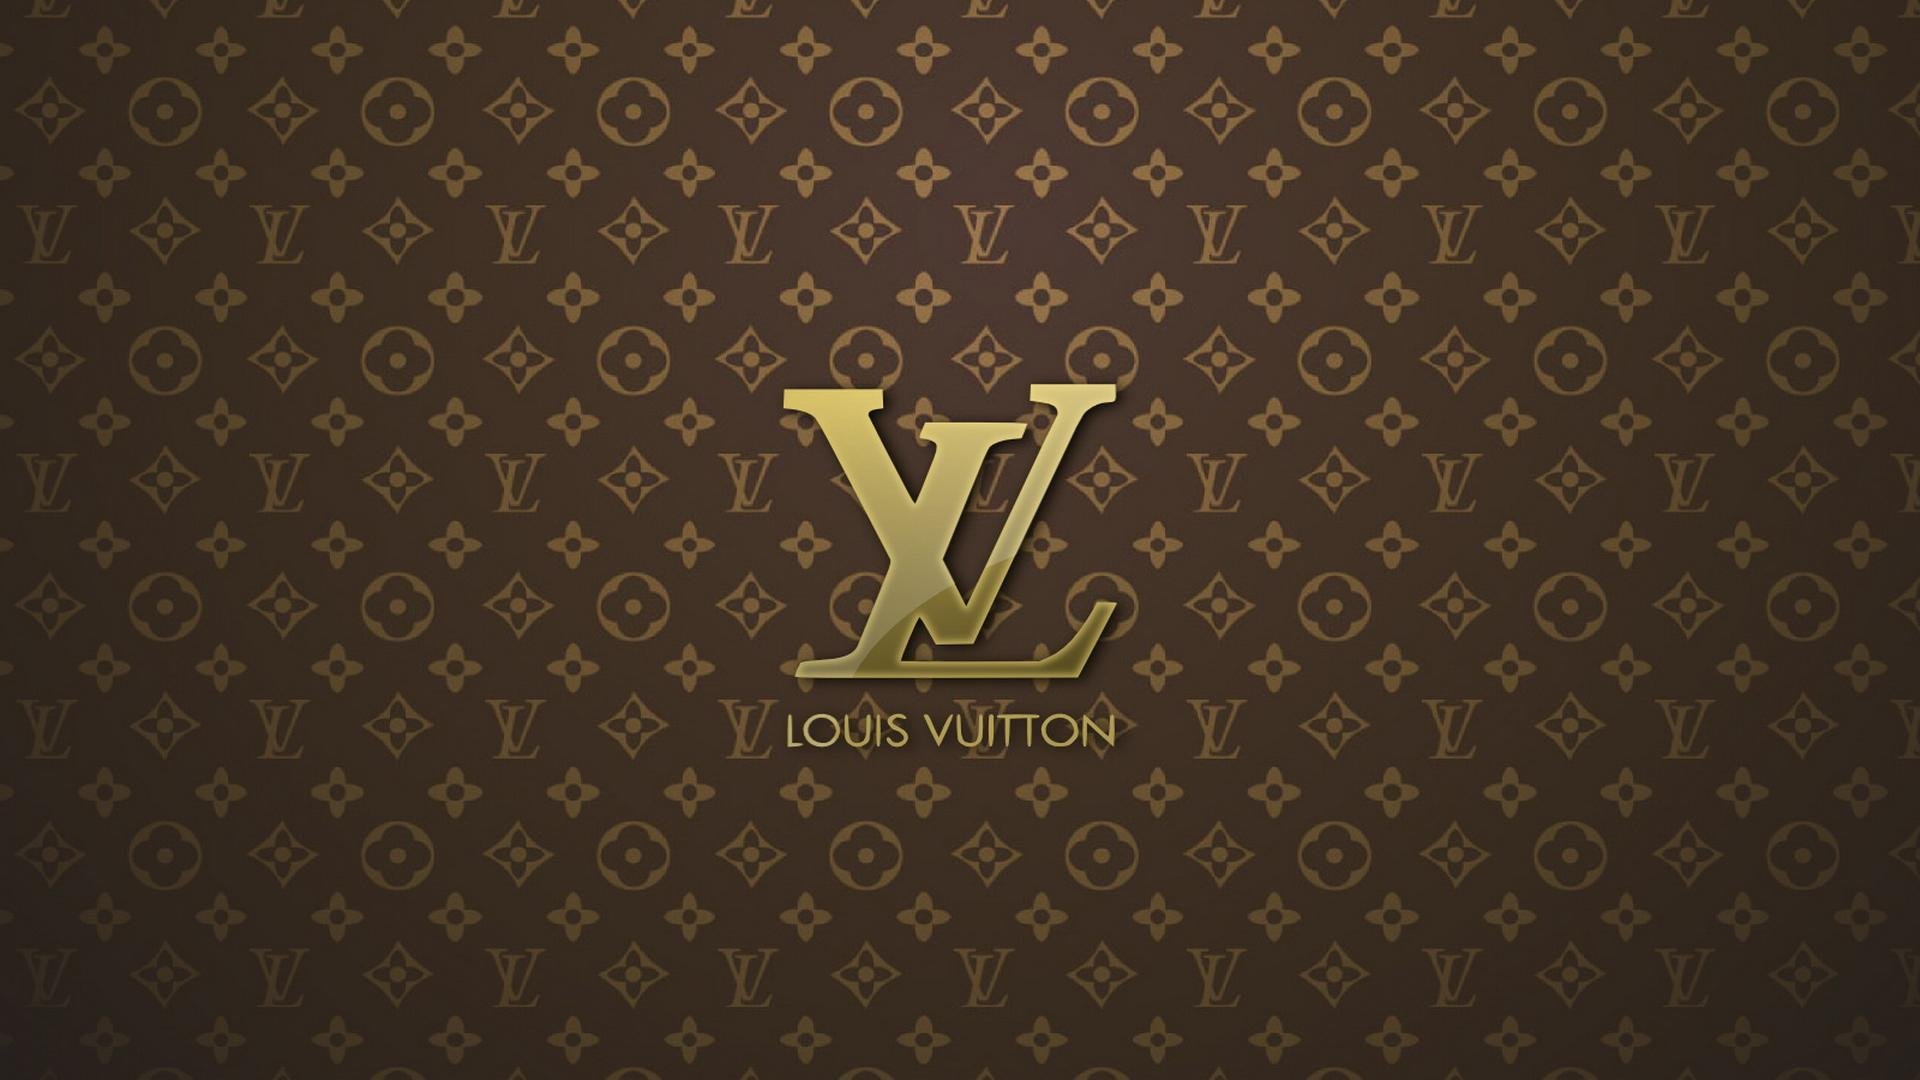 Inspirations from Louis Vuitton